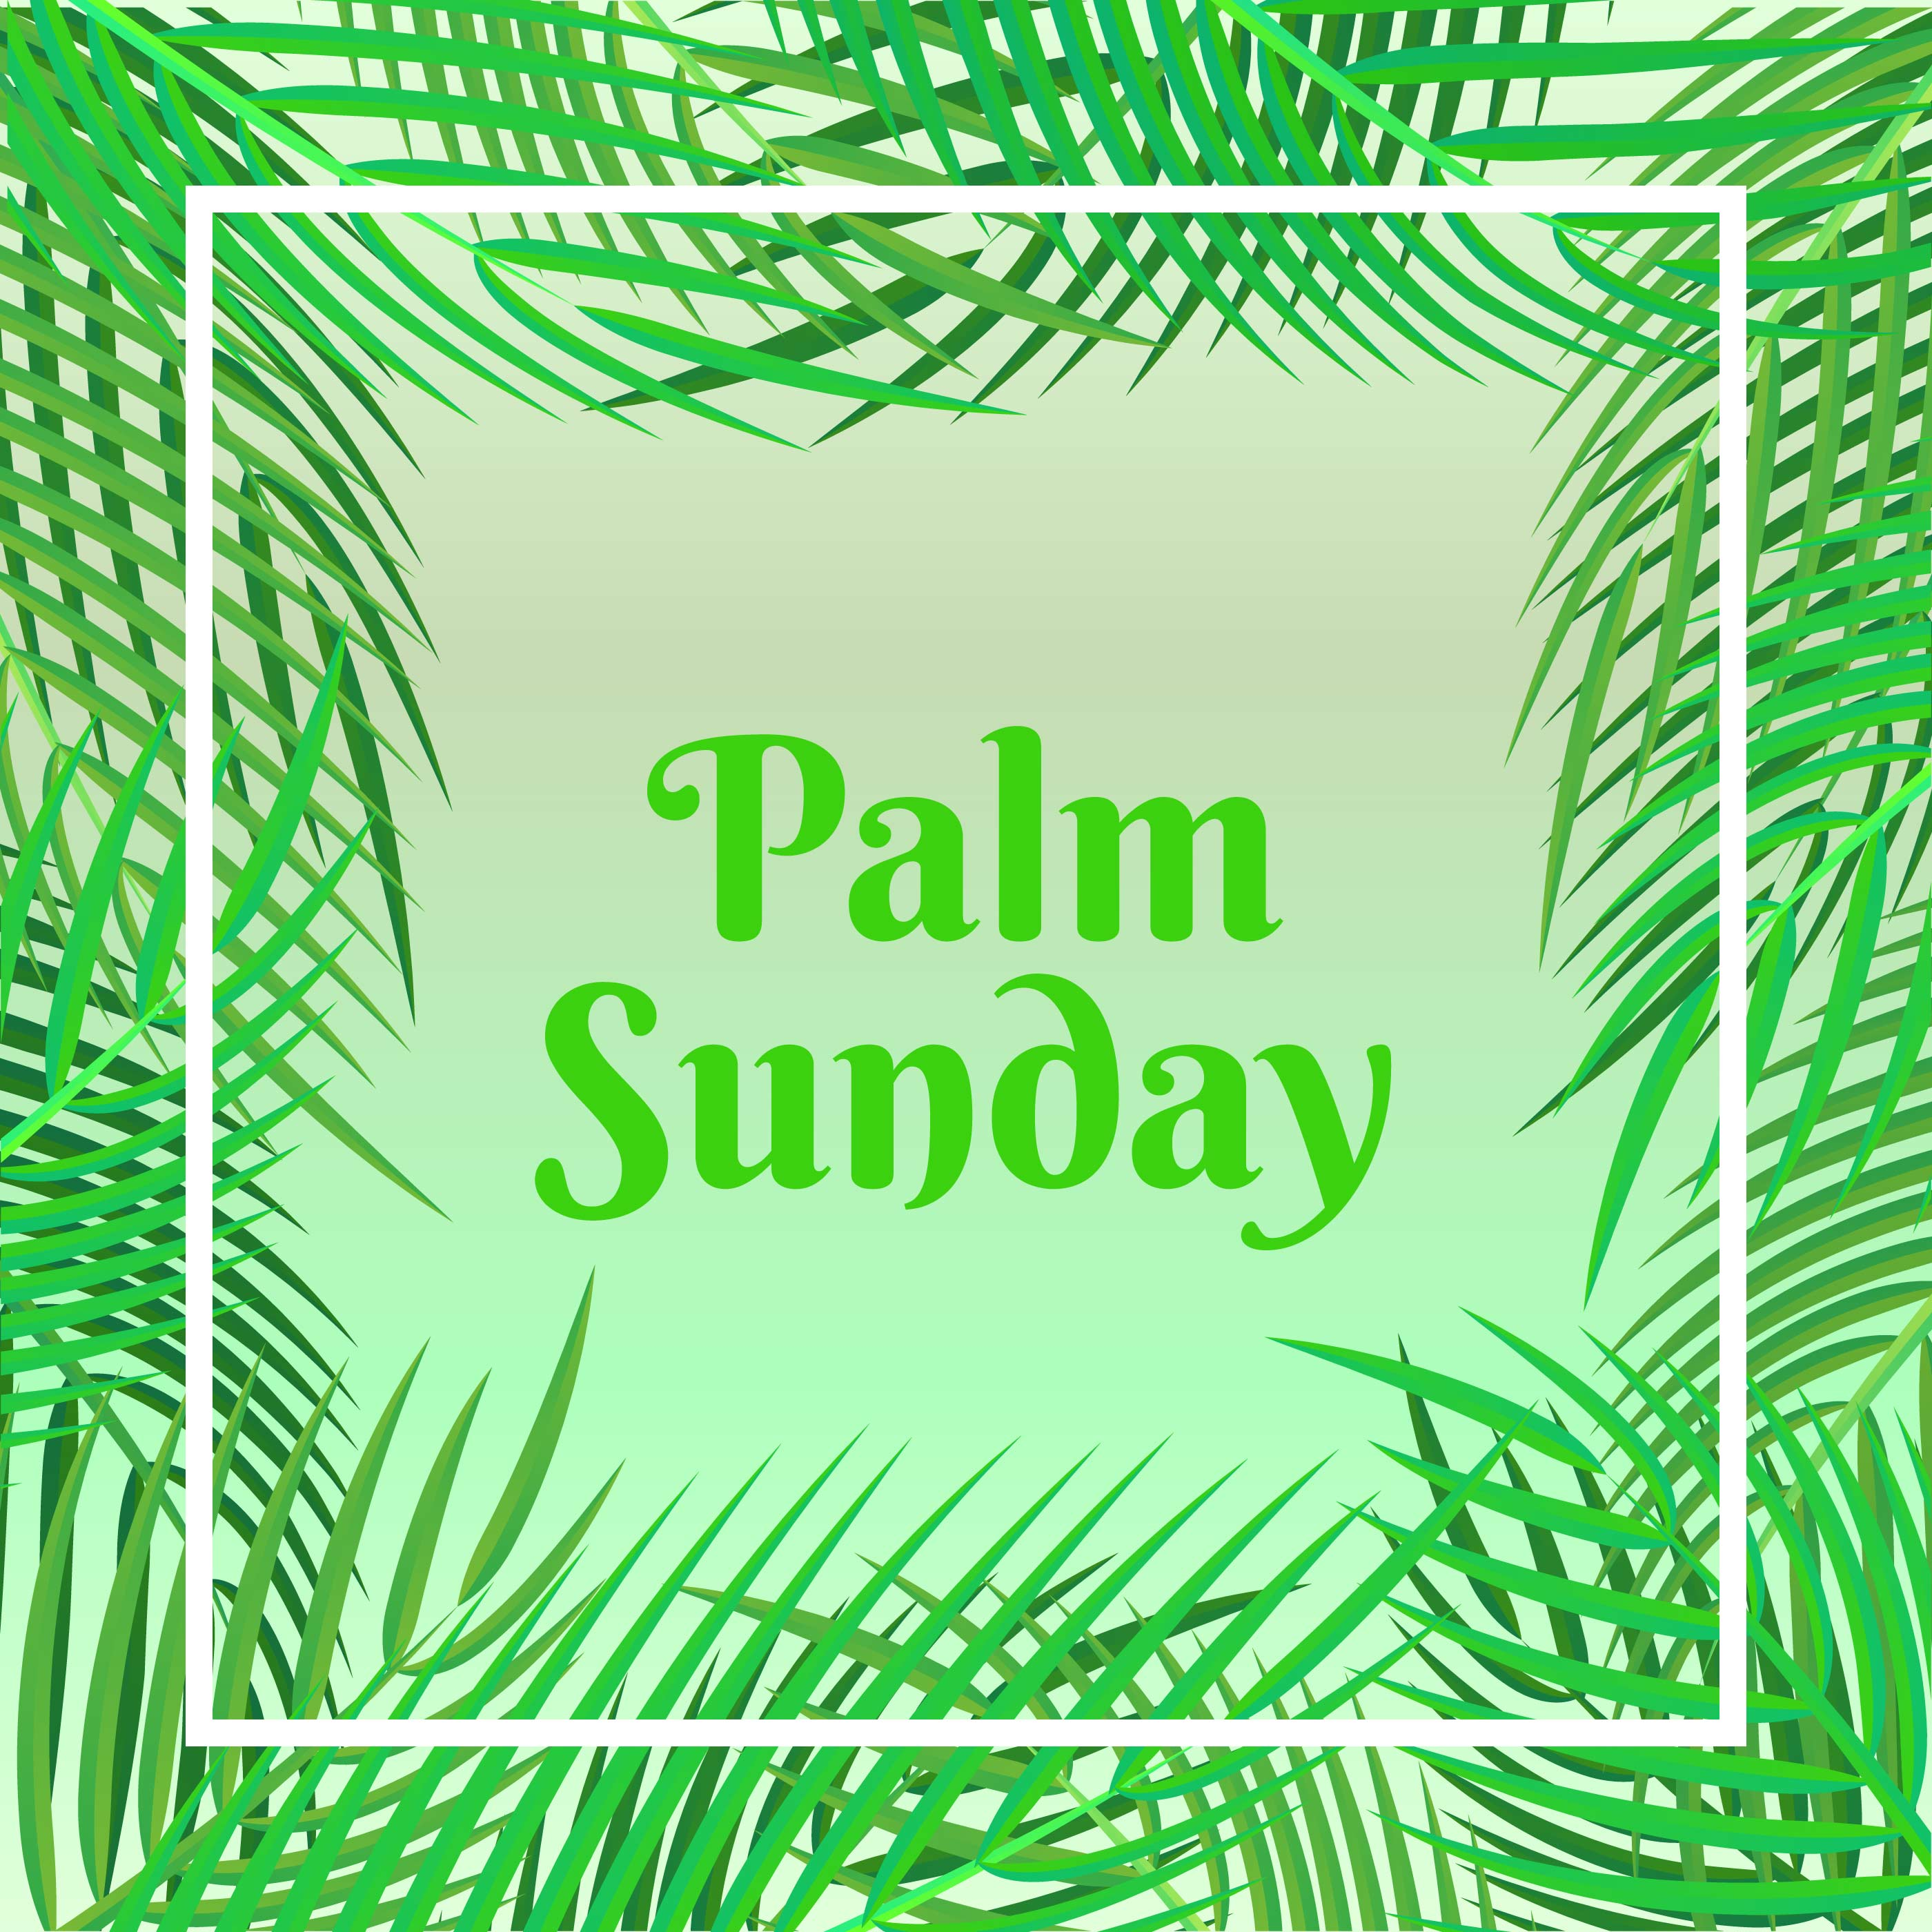 Palm Sunday Holiday Card With Palm Leaves Border ...